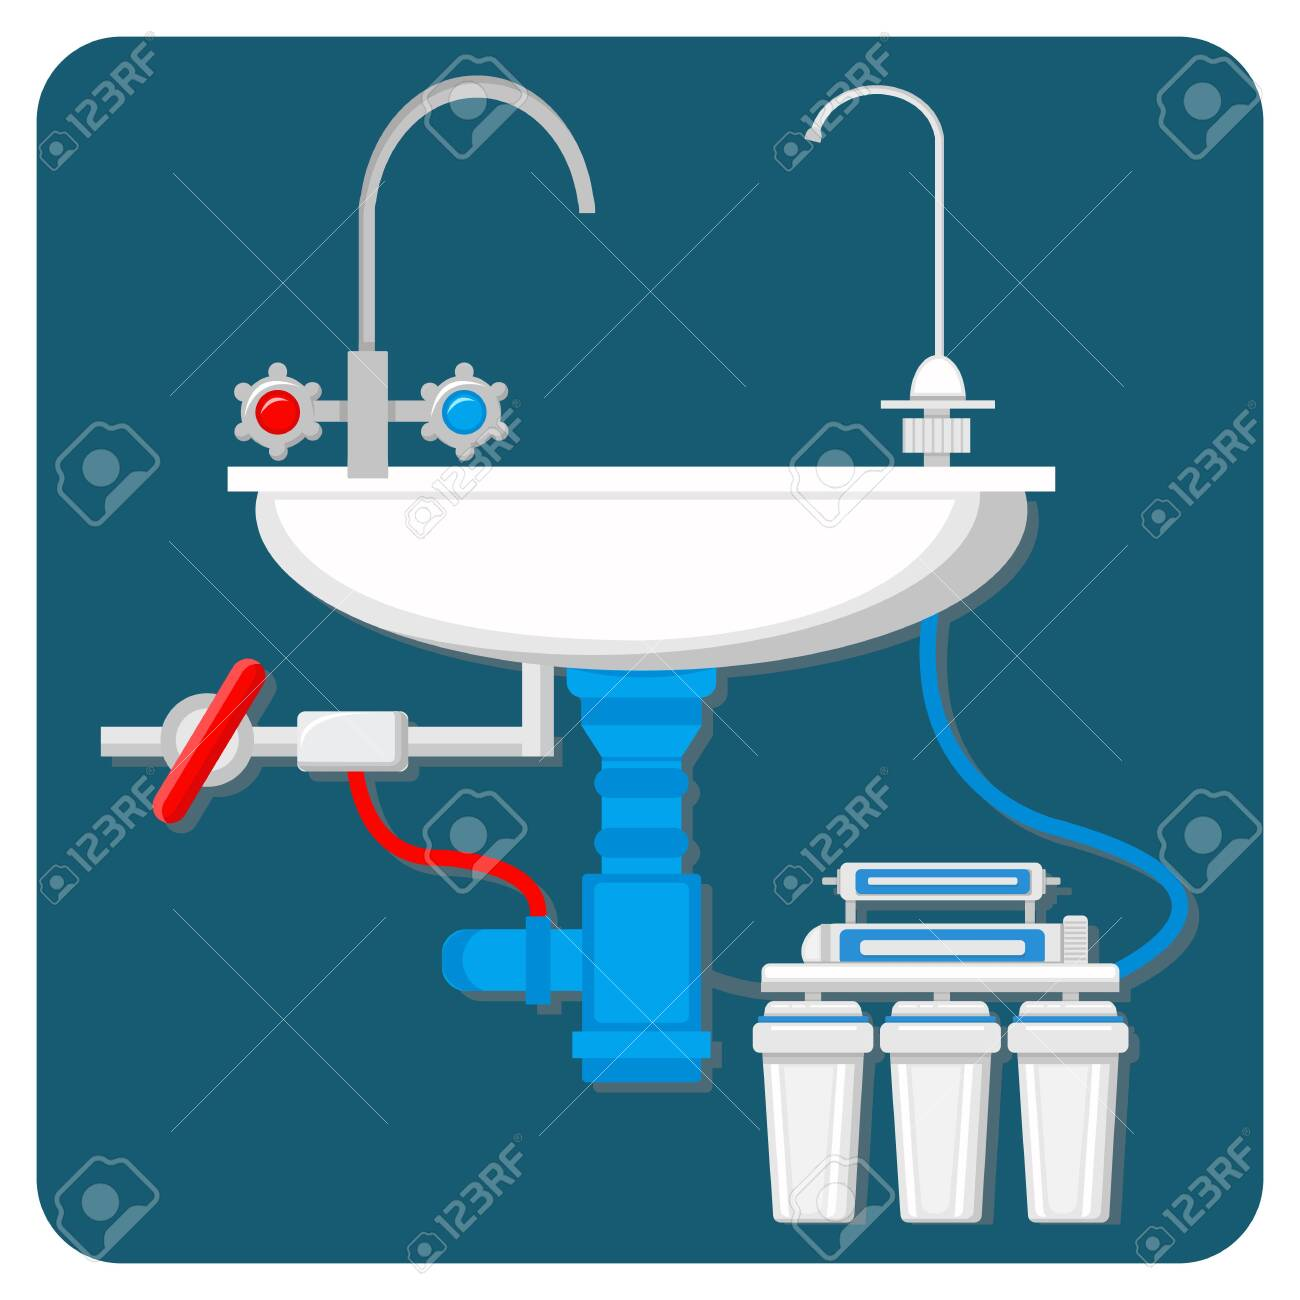 Water Purification System Vector Illustration Cartoon Pipes